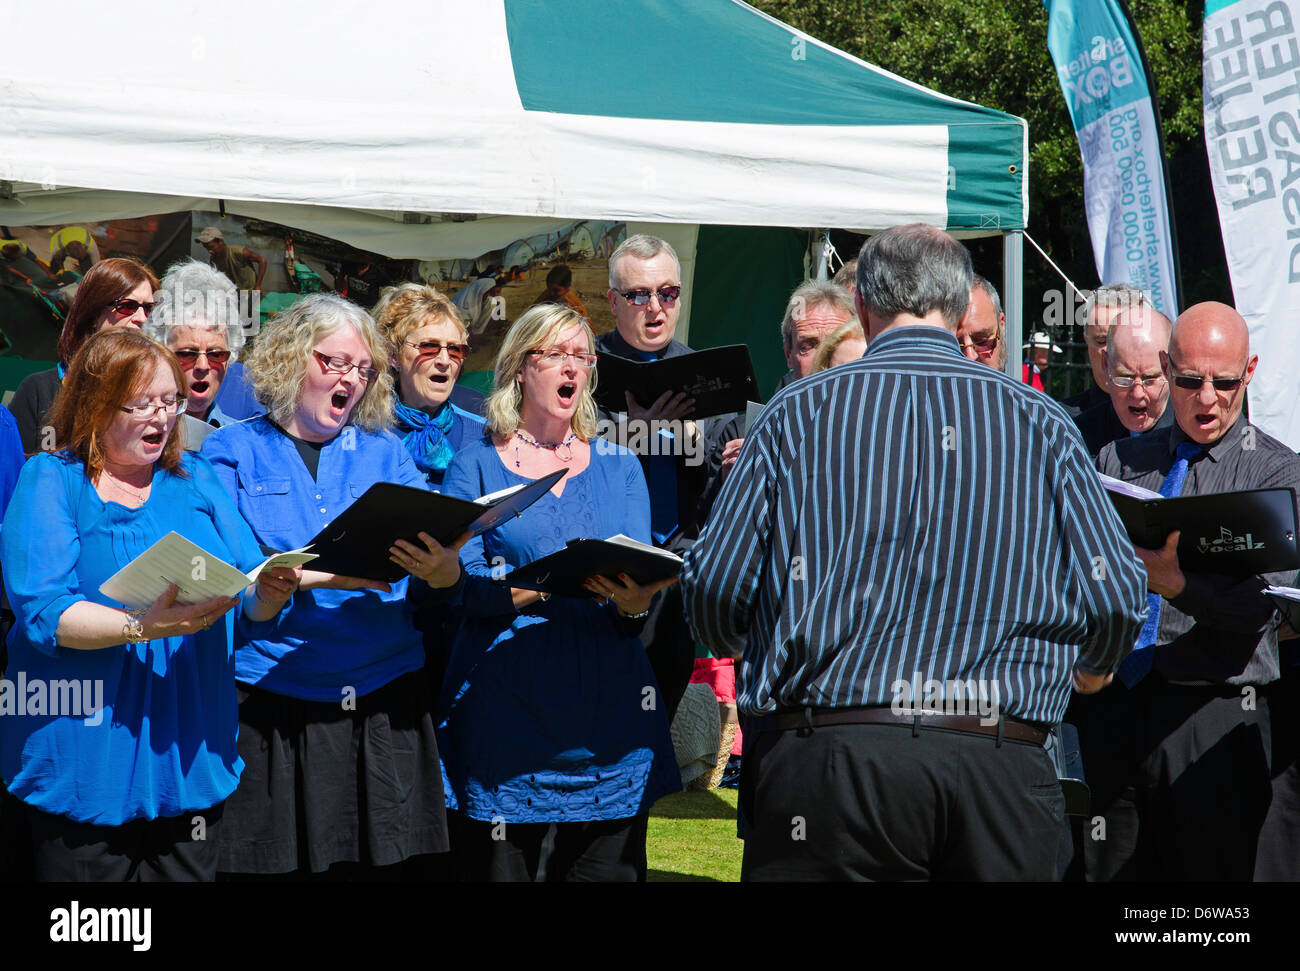 A choir in full voice at an outside venue - Stock Image